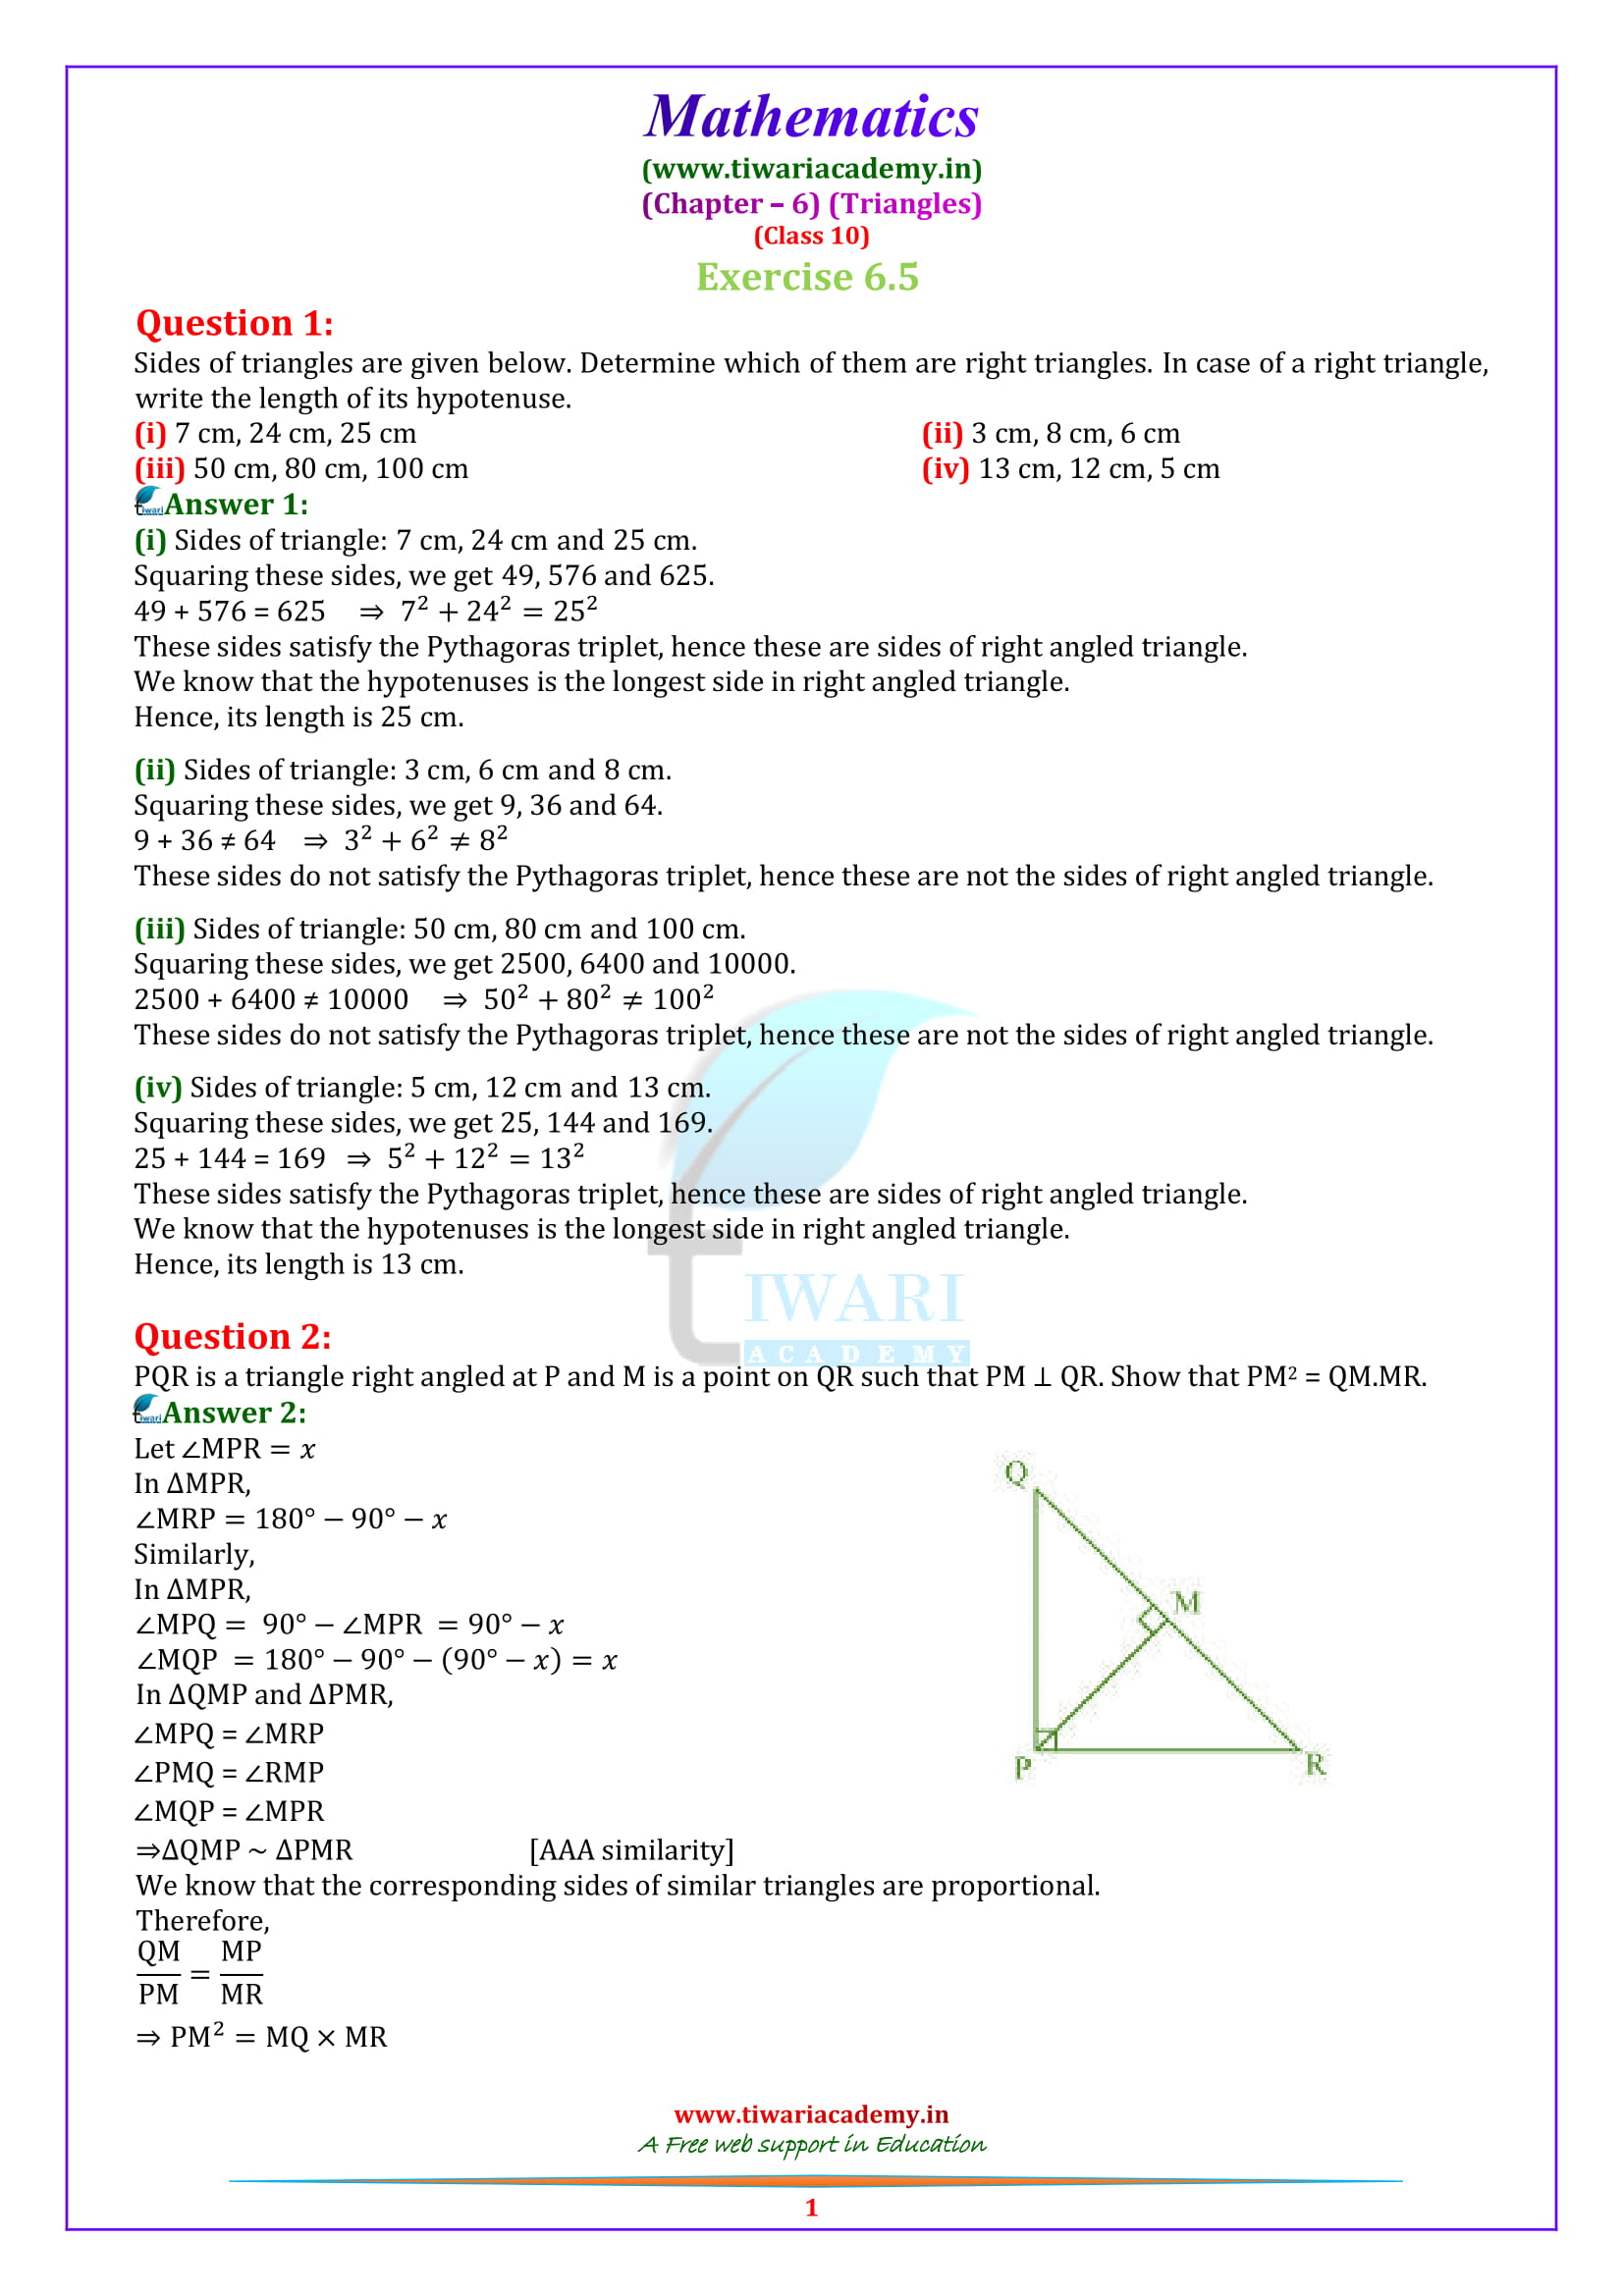 10 Maths Exercise 6.5 solutions in einglish medium